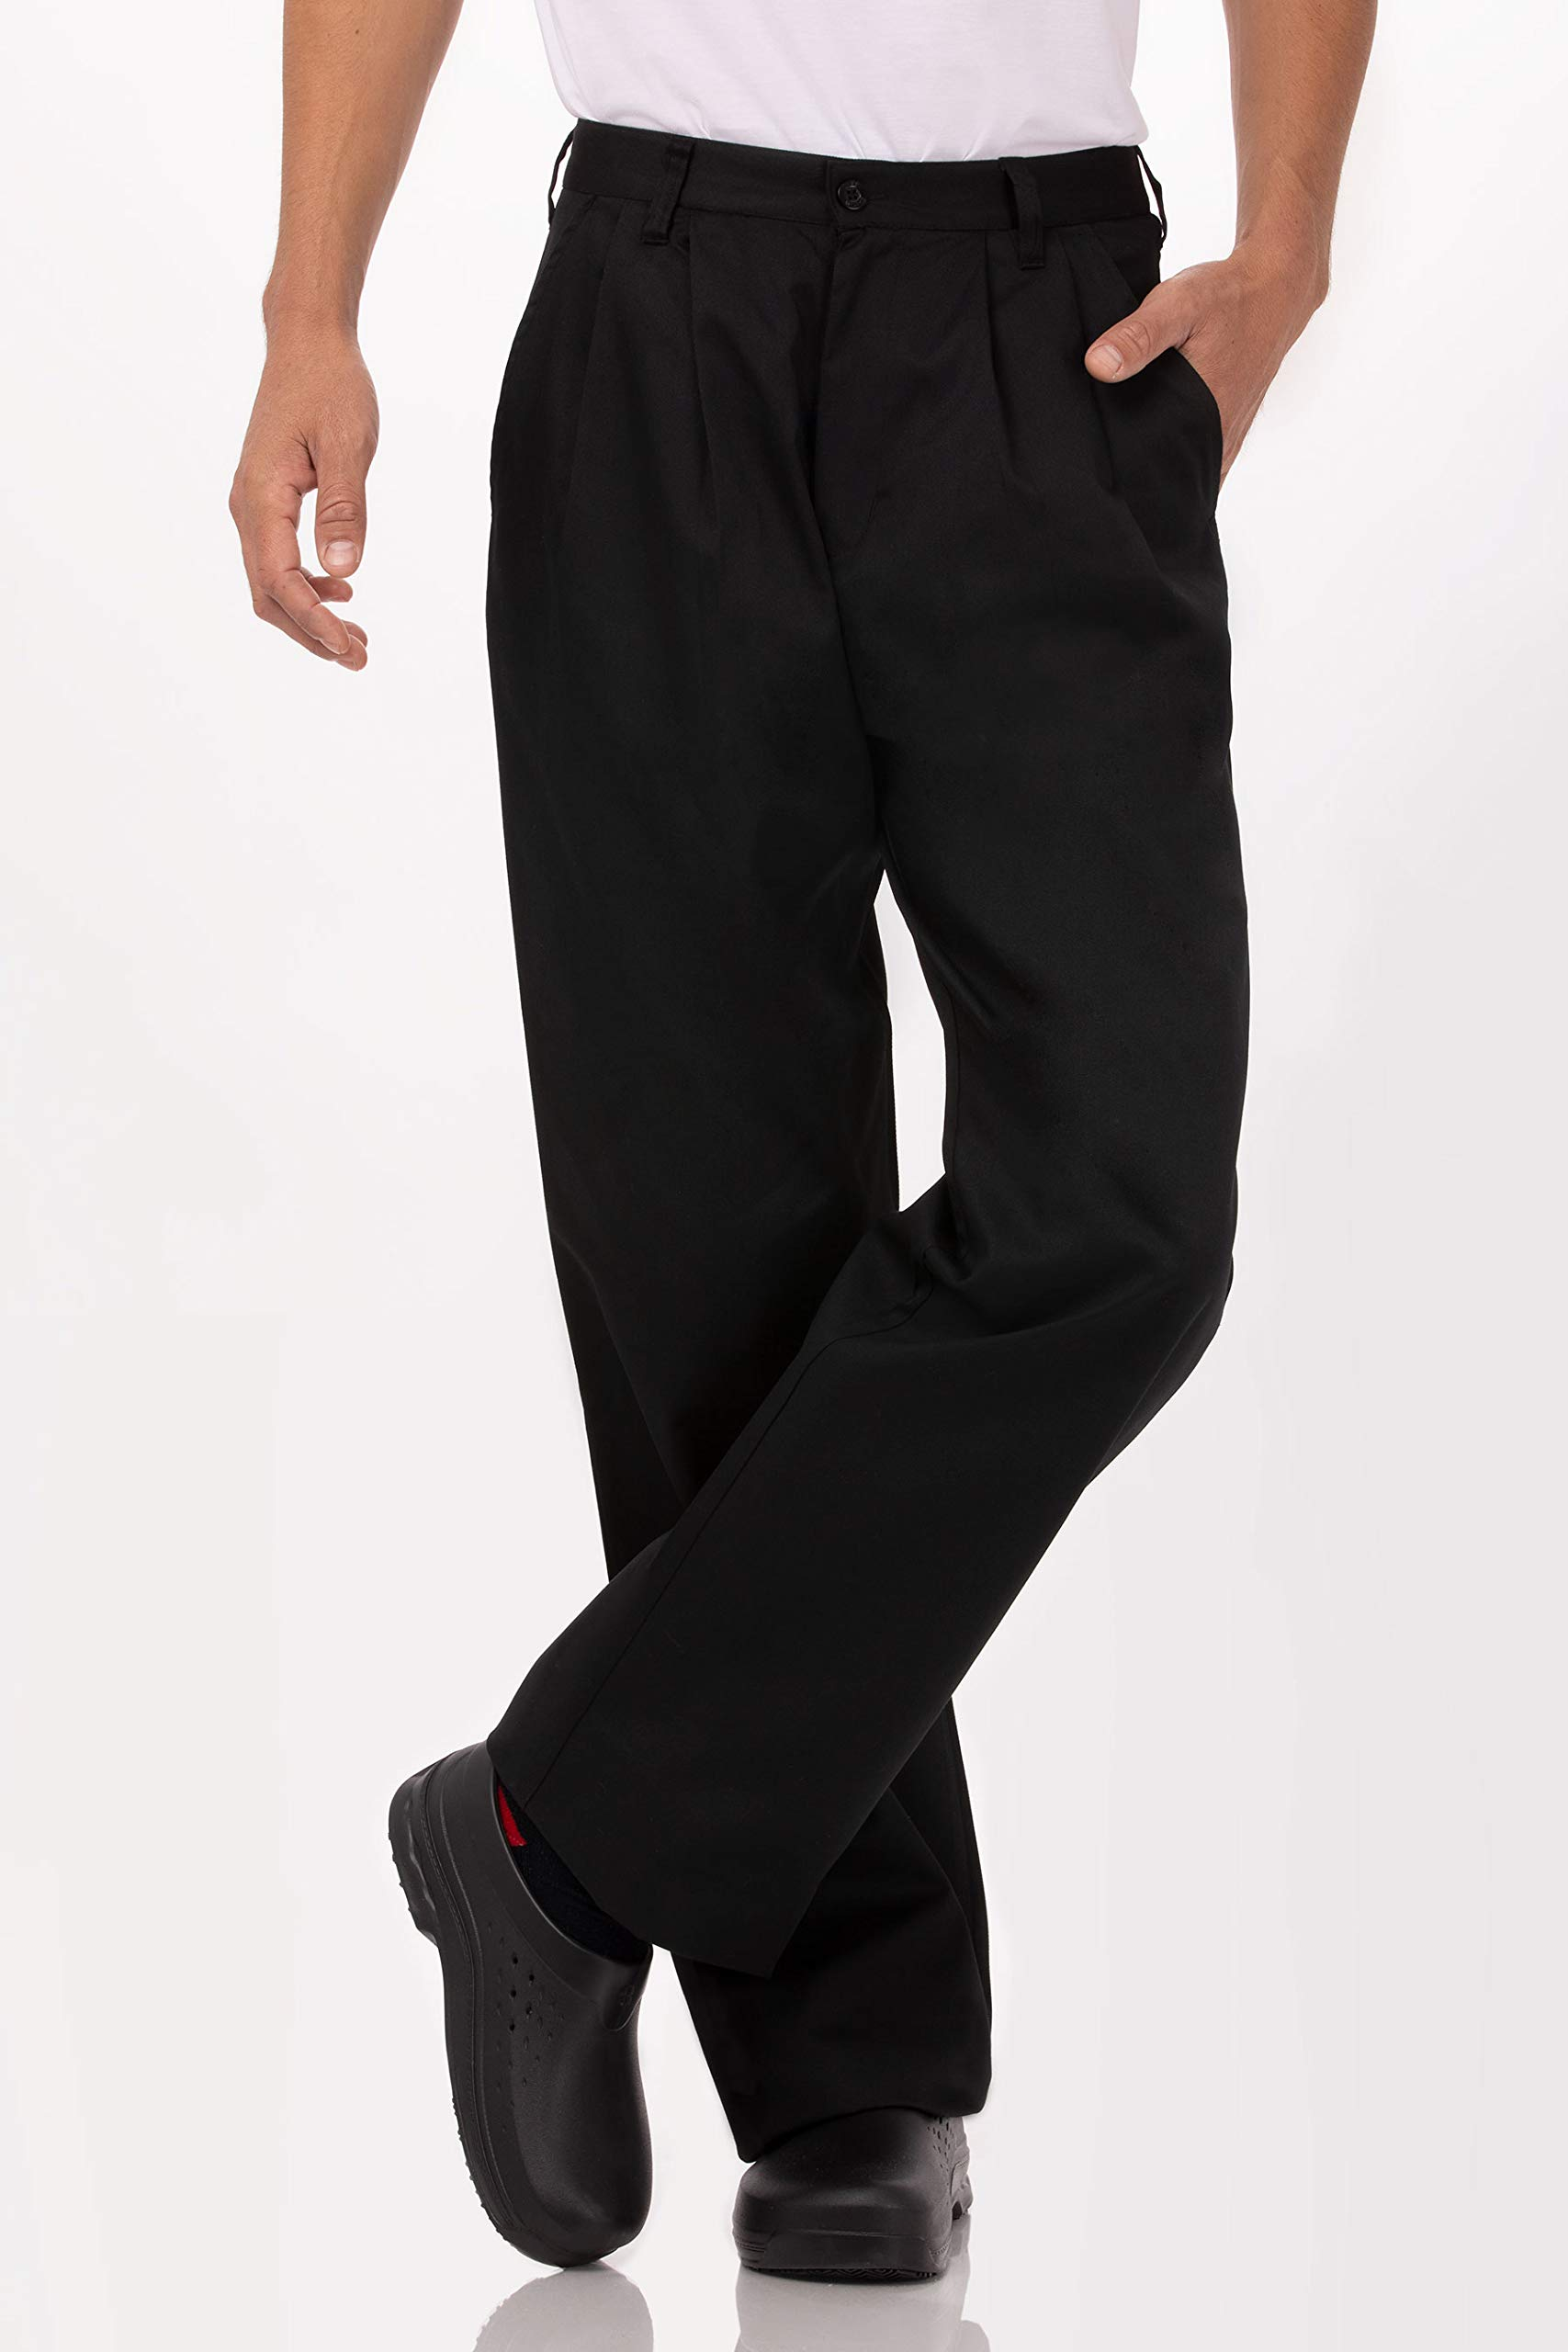 Chef Works Men's Basic Chef Pant, Black, 54 by Chef Works